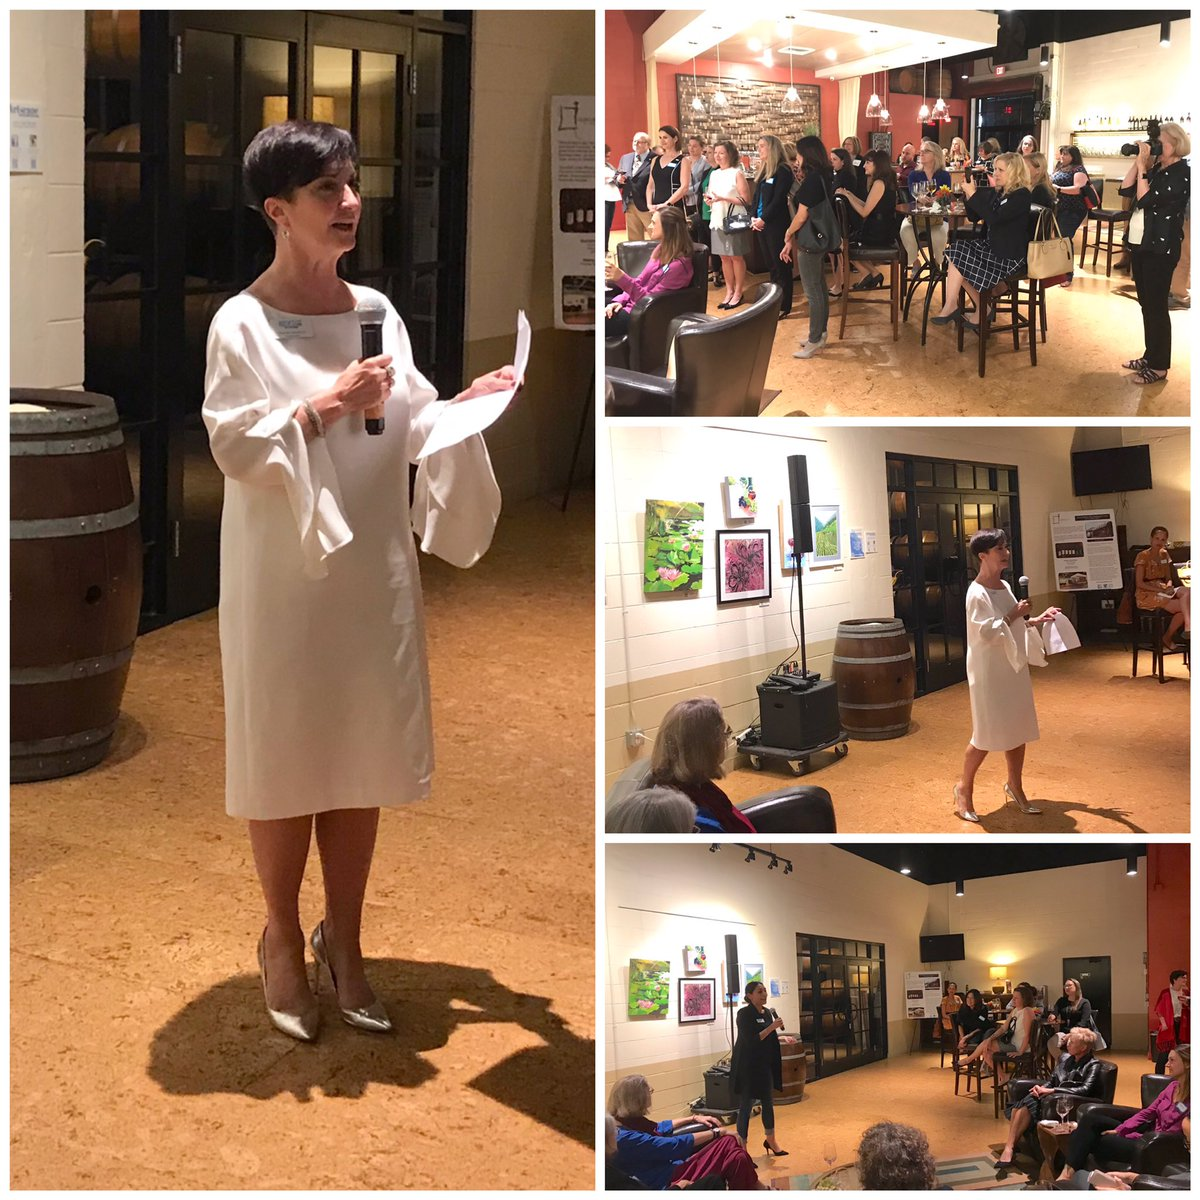 Star-studded group at RL Central Florida's Quantum Leap party. Pam Goodman introduced many future Florida leaders.   #Shesthechange